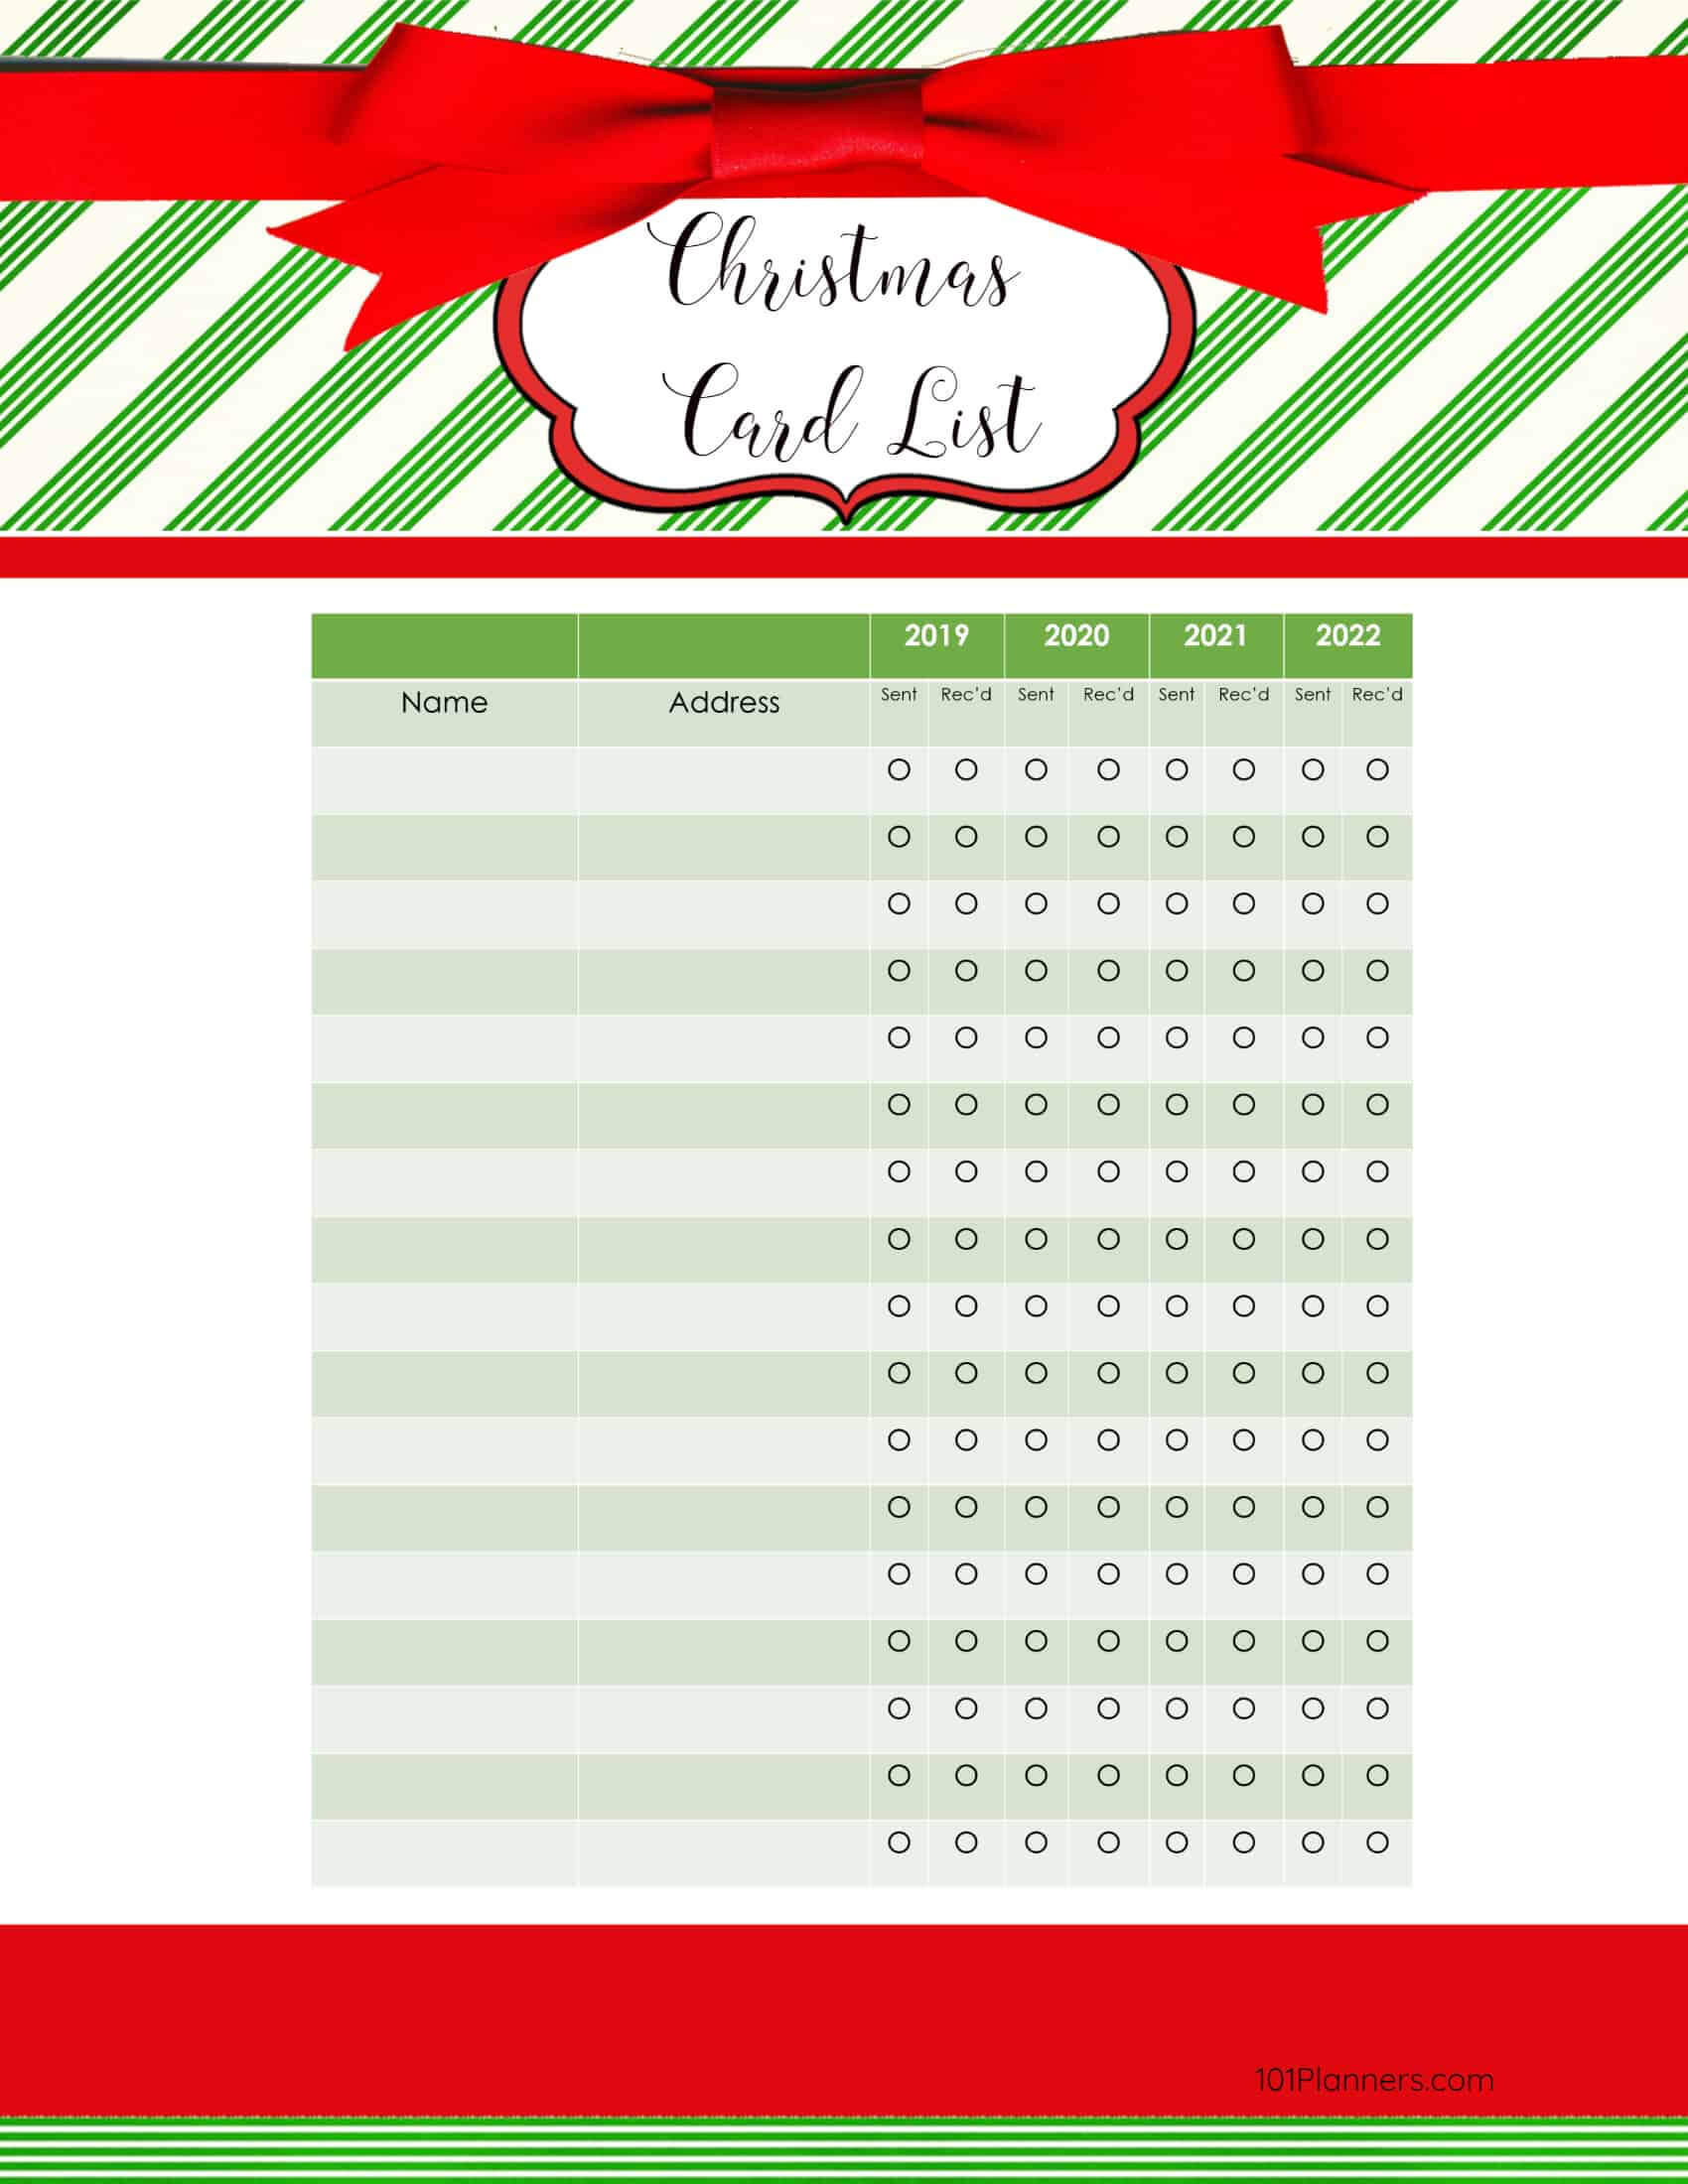 Free Printable Christmas Gift List Template Throughout Christmas Card List Template